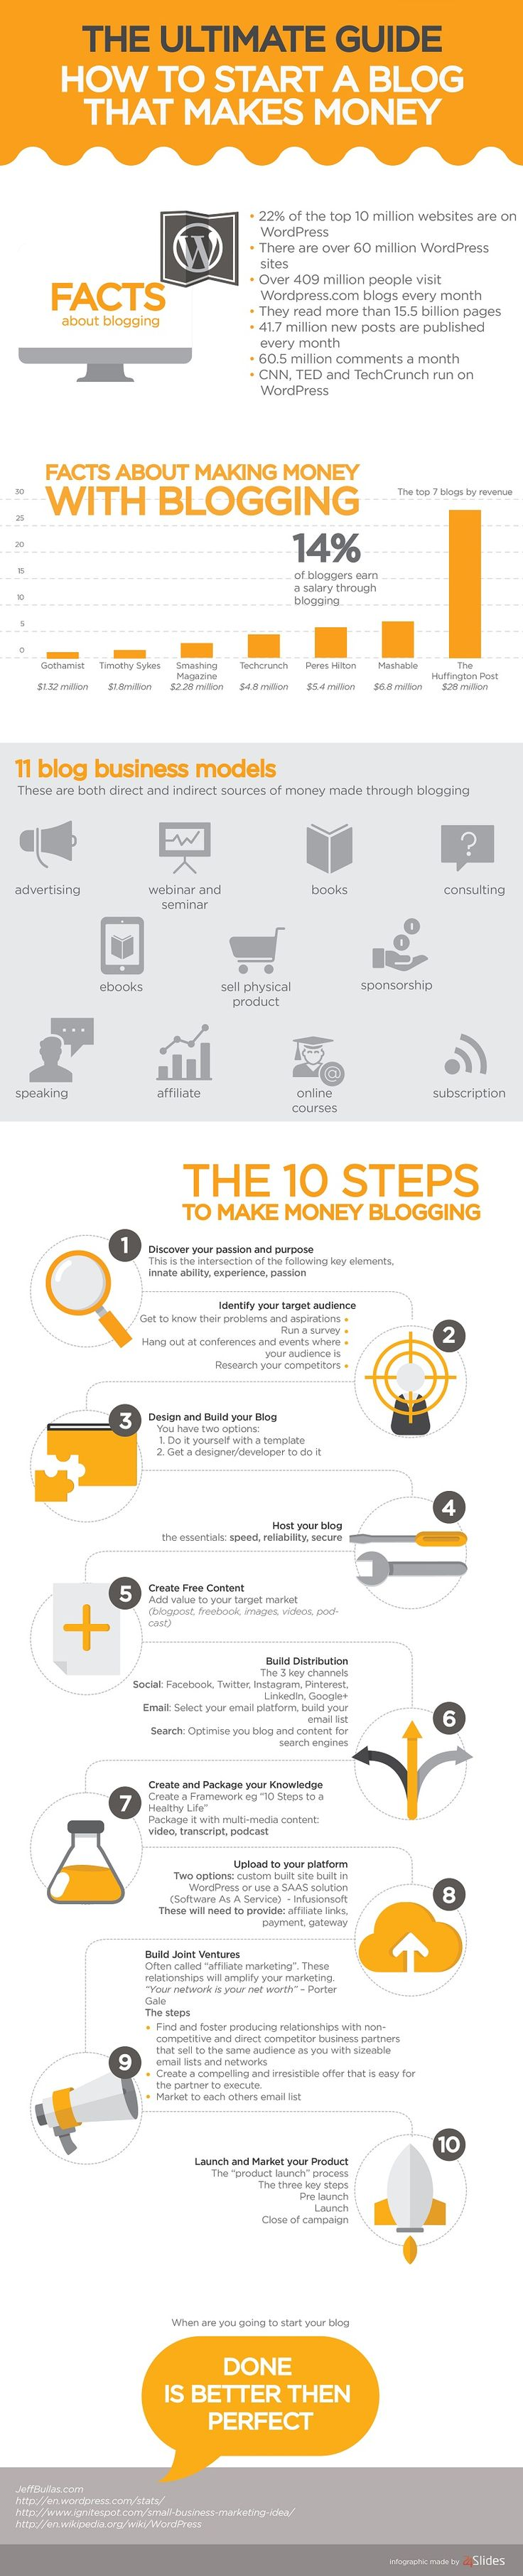 How to Make Money Blogging - #infographic